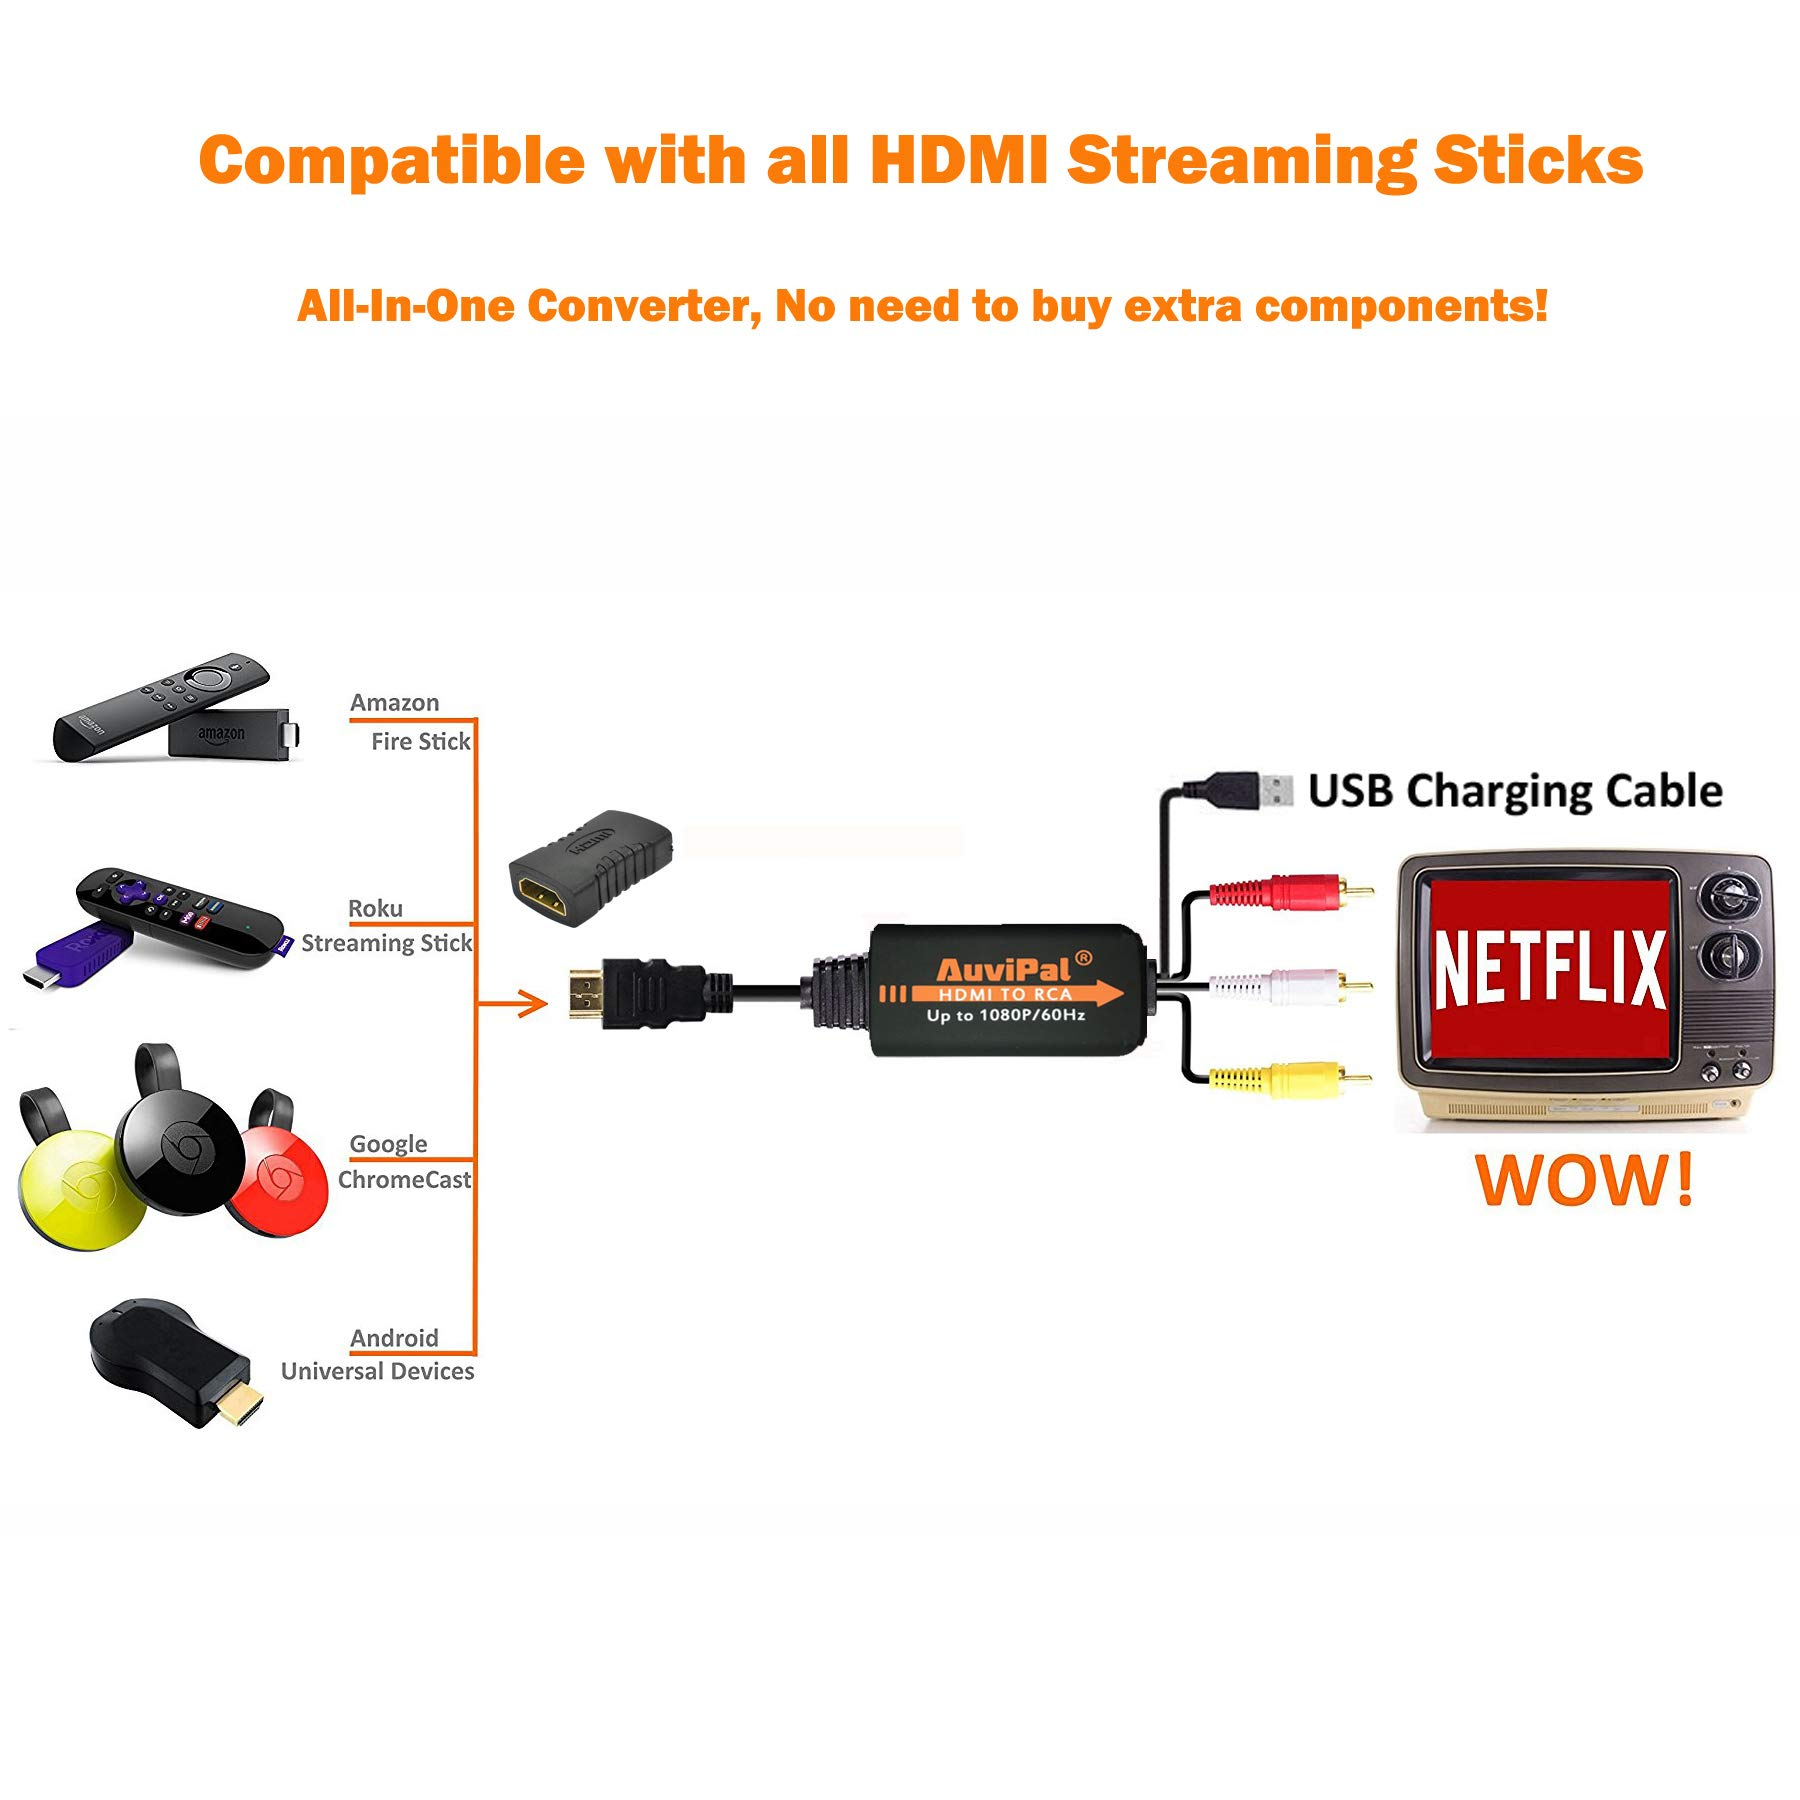 1080P HDMI to RCA Adapter with HDMI Coupler for Any HDMI Streaming Devices, Android TV KODI Box, Wii, PS3, PS4, Xbox One, DVD Player and More. All-in-One HDMI to 3RCA Composite AV Video Converter